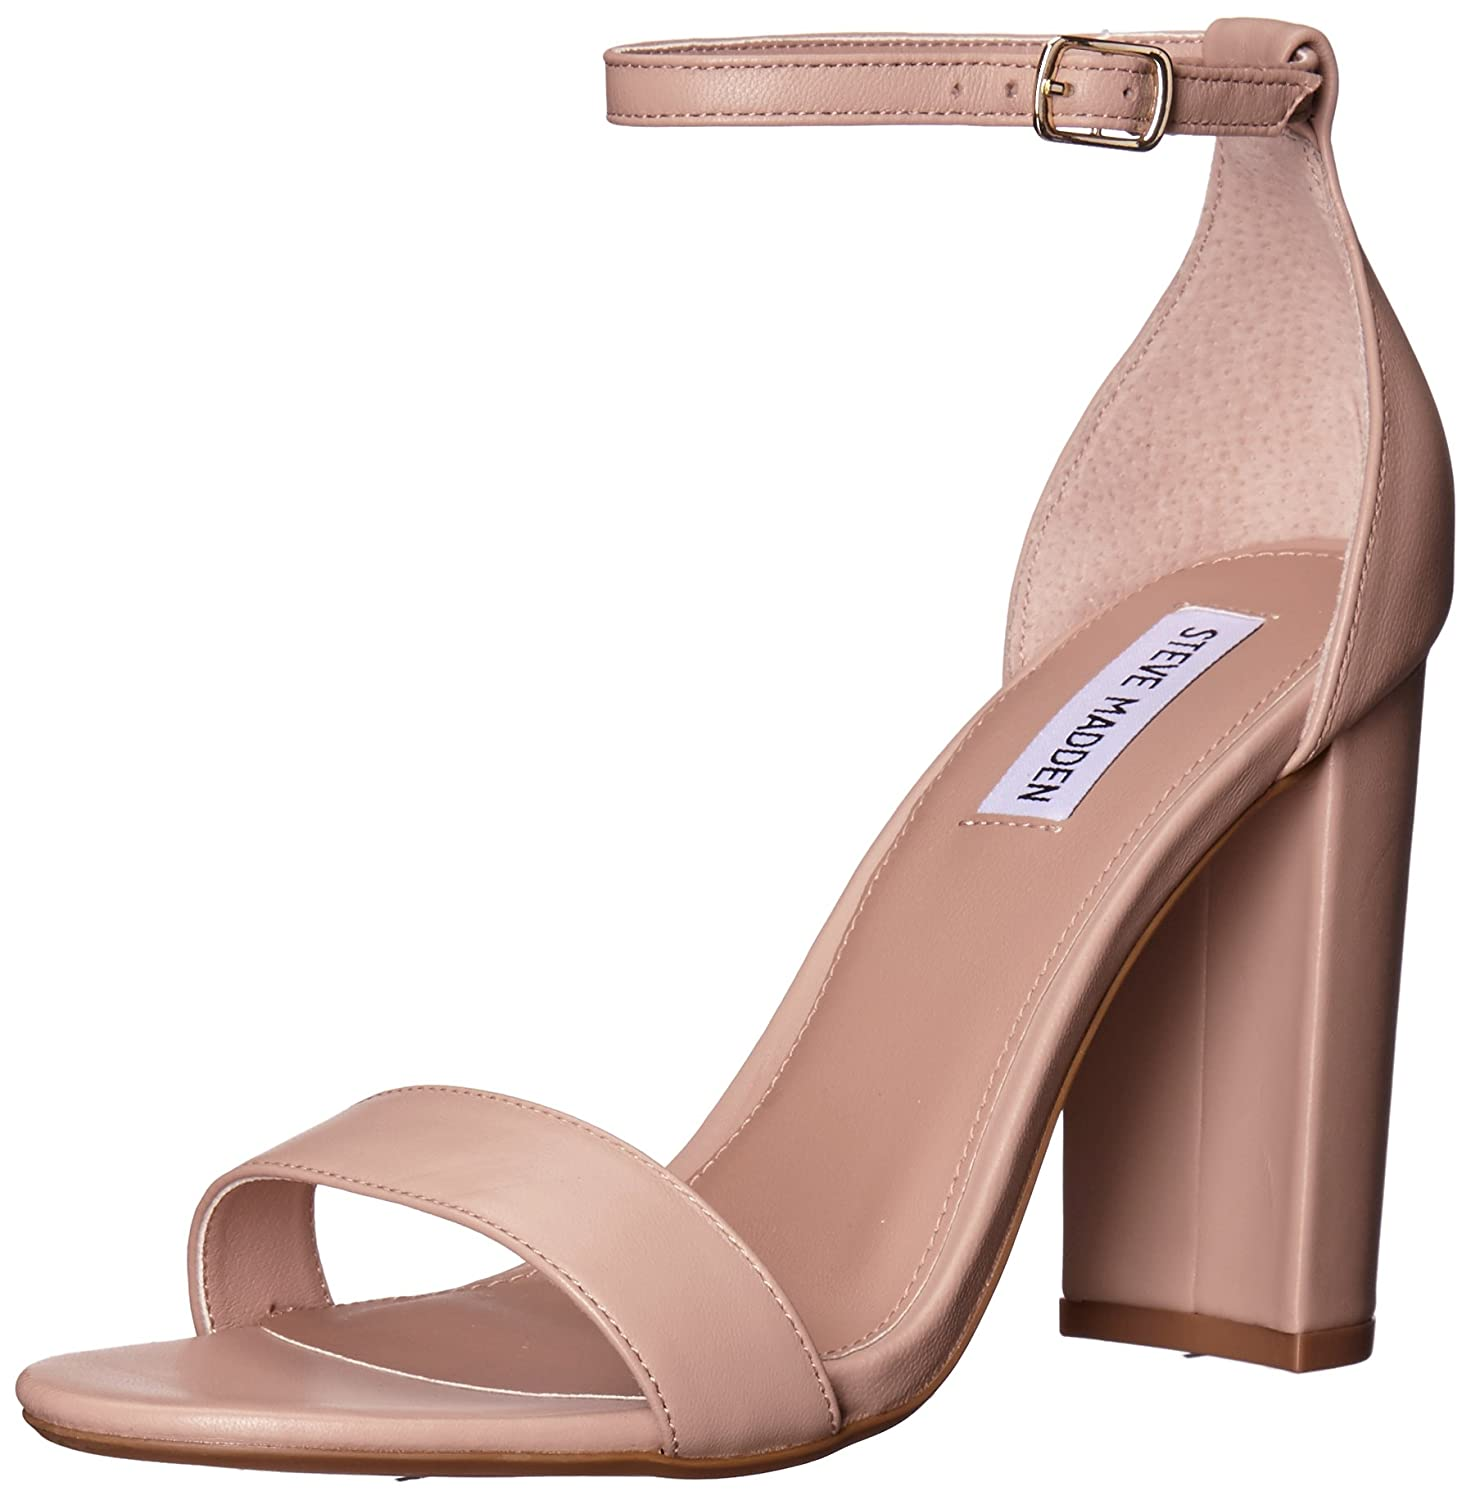 古典 Steve Madden Womens Carrson B(M) Open Toe Toe Special Strap Occasion Suede Ankle Strap Sandals B0714G81MJ 8.5 B(M) US|Blush Leather Blush Leather 8.5 B(M) US, REGGINA JEWELRY レッジーナ:59dc875a --- arianechie.dominiotemporario.com